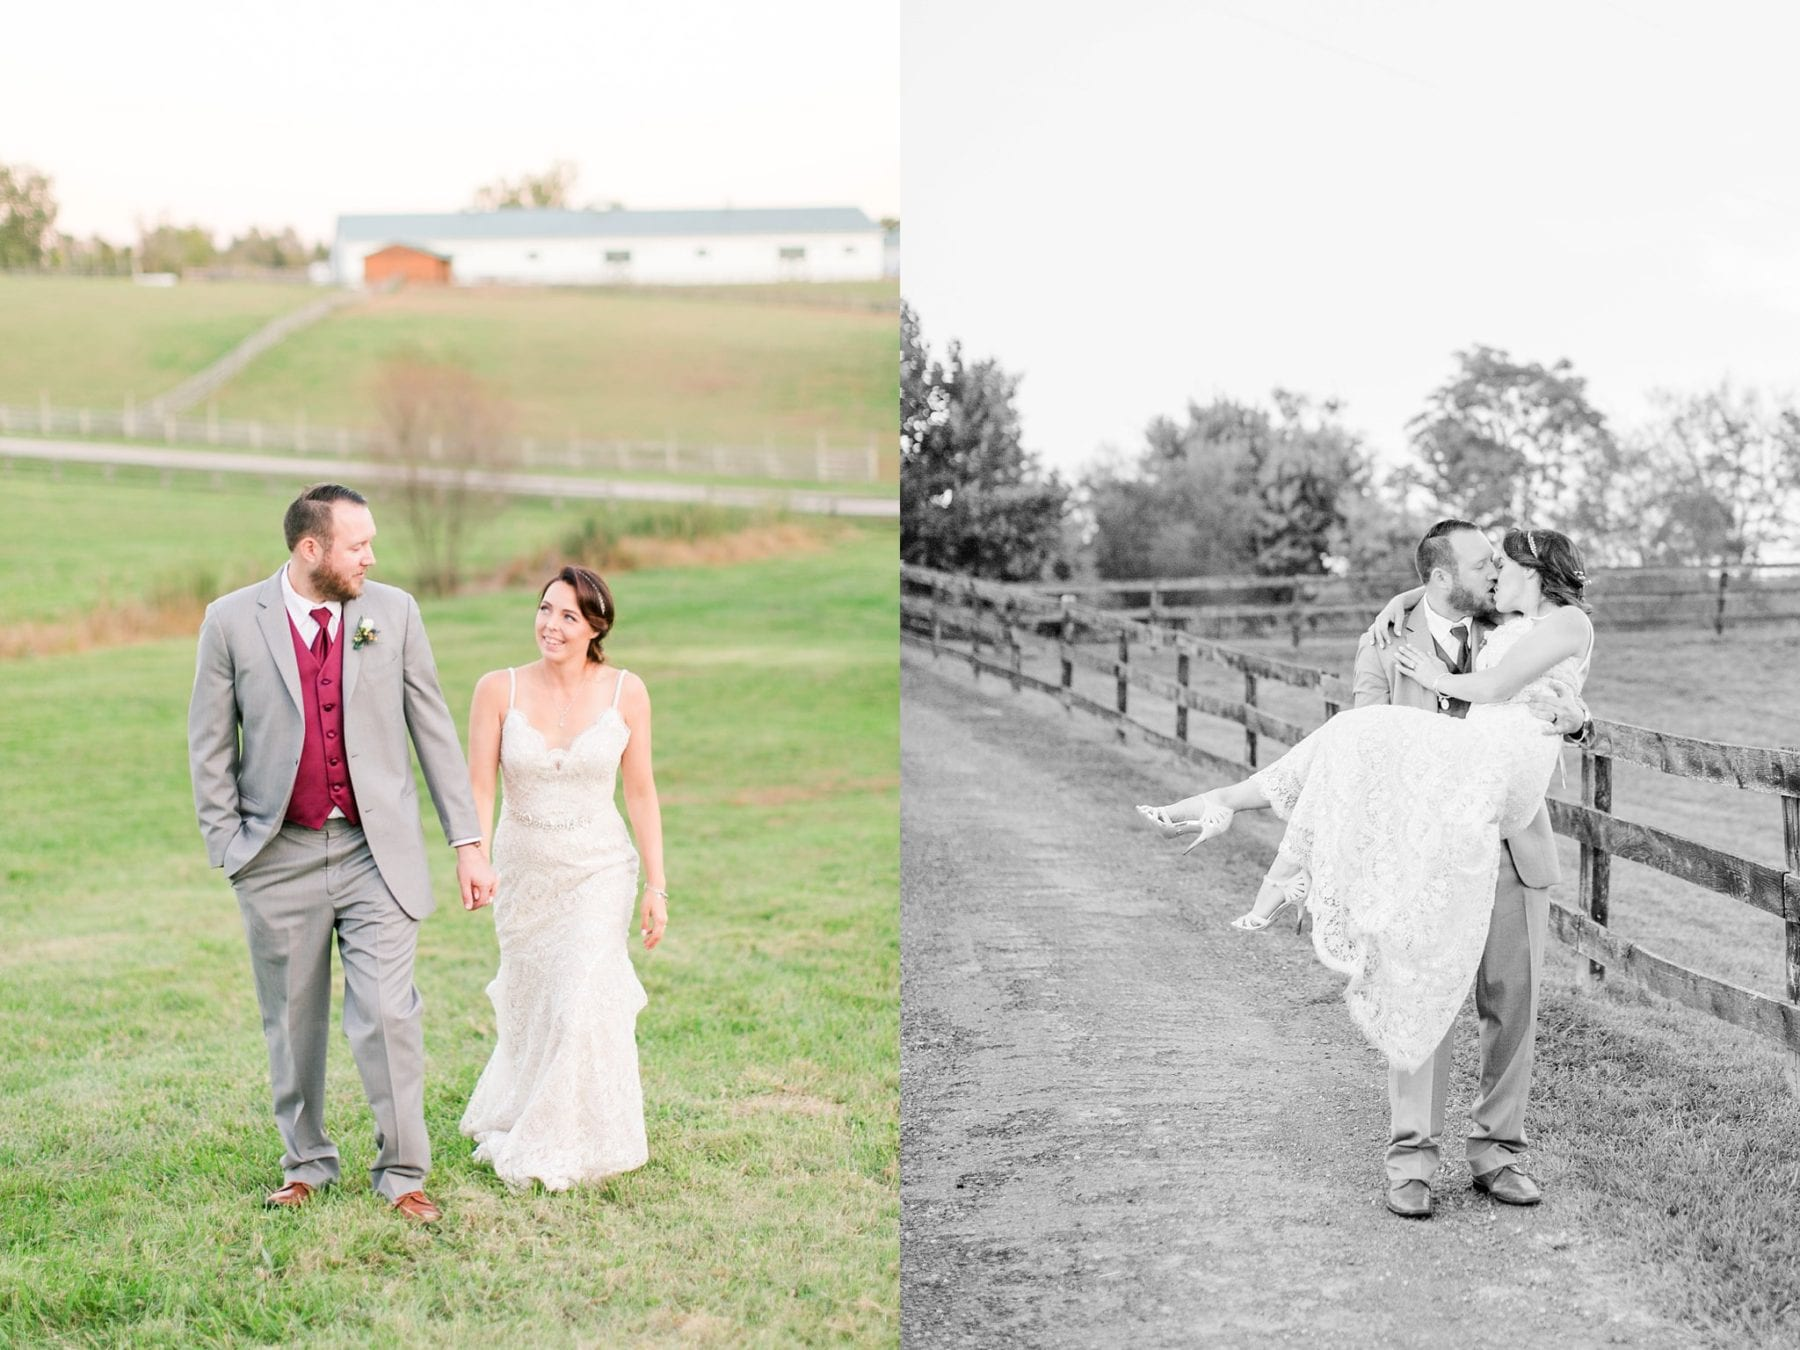 Tranquility Farm Wedding Photos Leesburg Wedding Photographer Megan Kelsey Photography Virginia Wedding Photographer Matt & Colleen-159.jpg